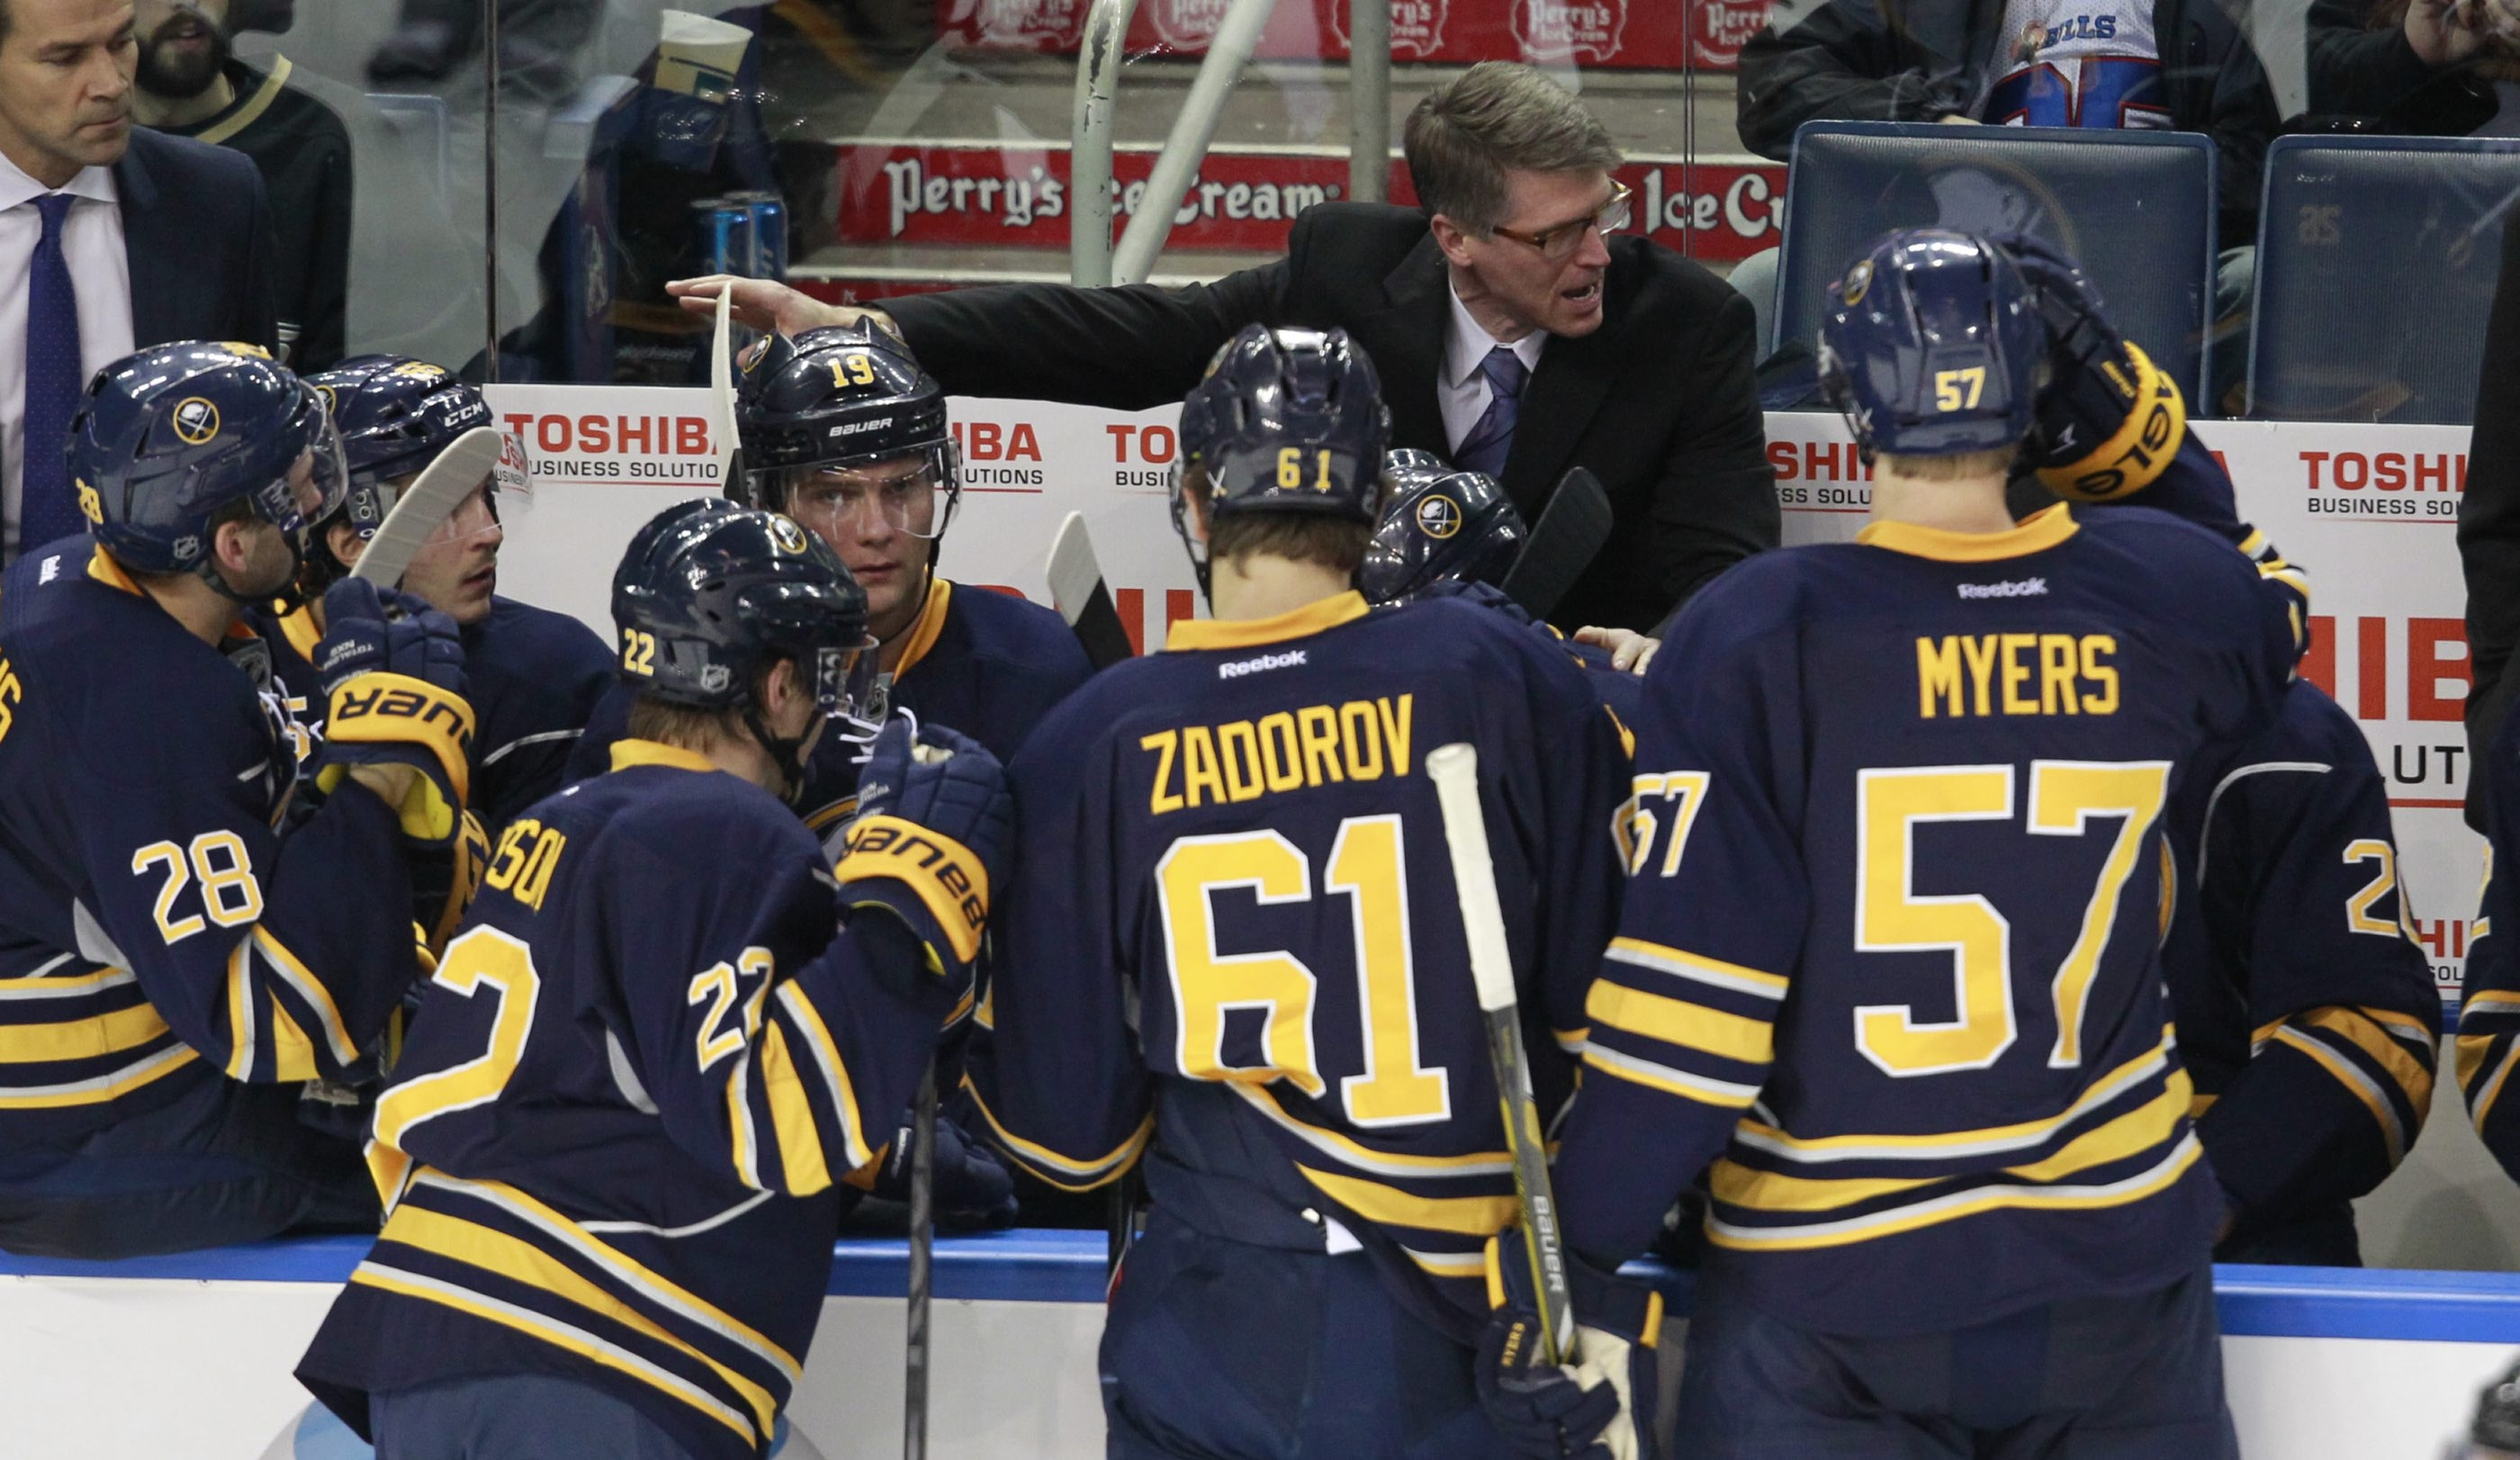 Buffalo Sabres coach Ron Rolston tries to rally his team during a timeout against the Anaheim Ducks.